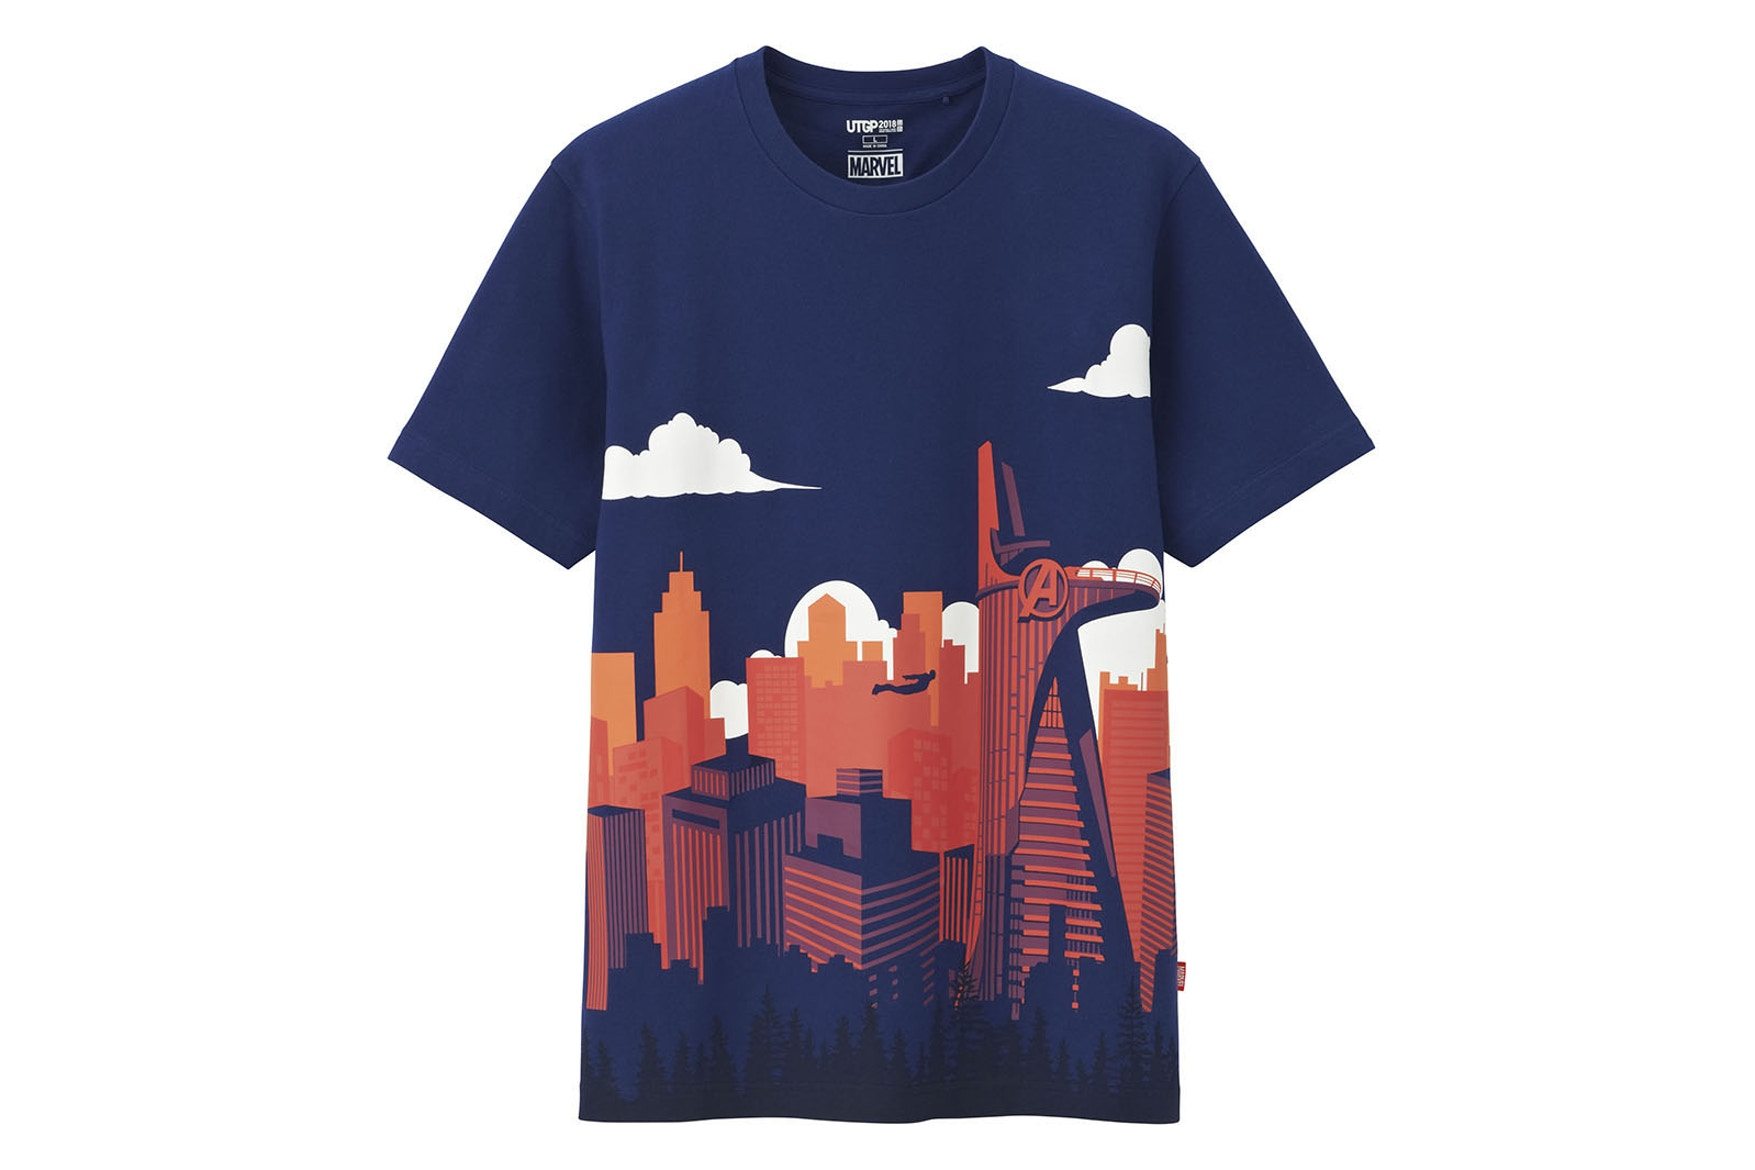 uniqlo-marvel-ut-grand-prix-2018-t-shirt-collection-14